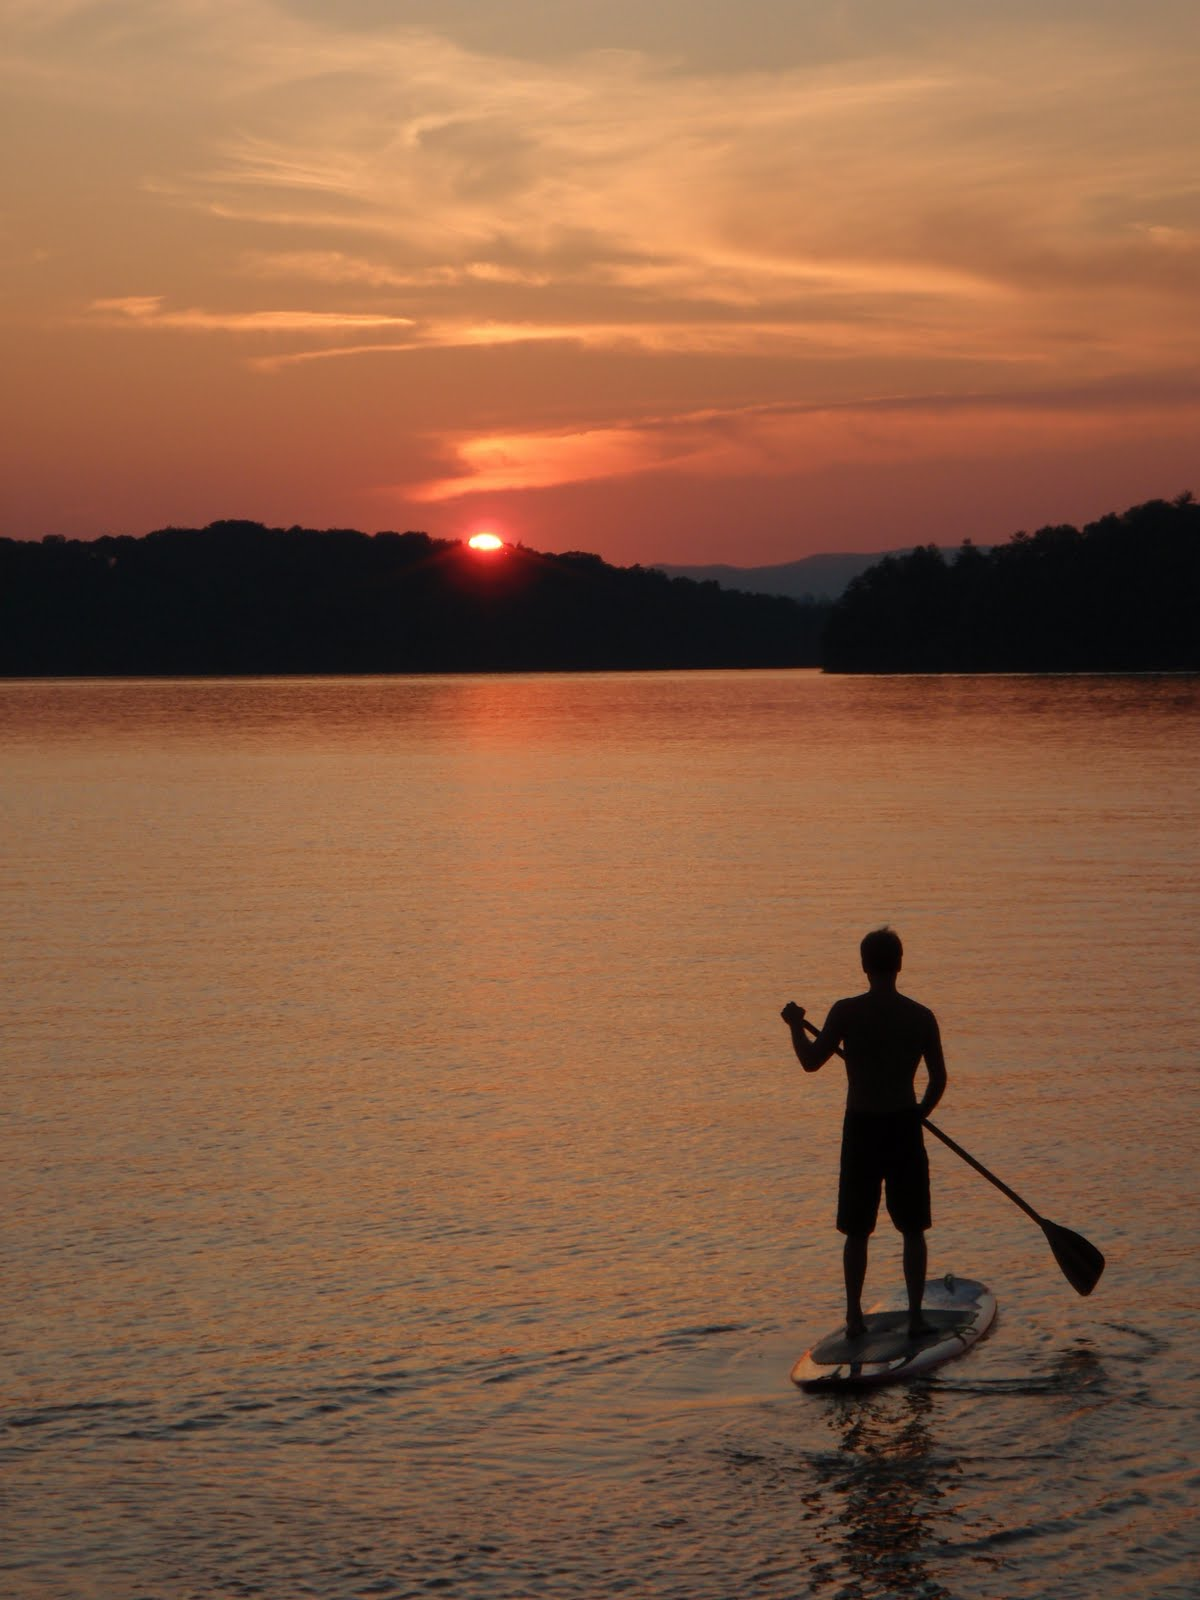 Rent a Board from Surf Blue Ridge